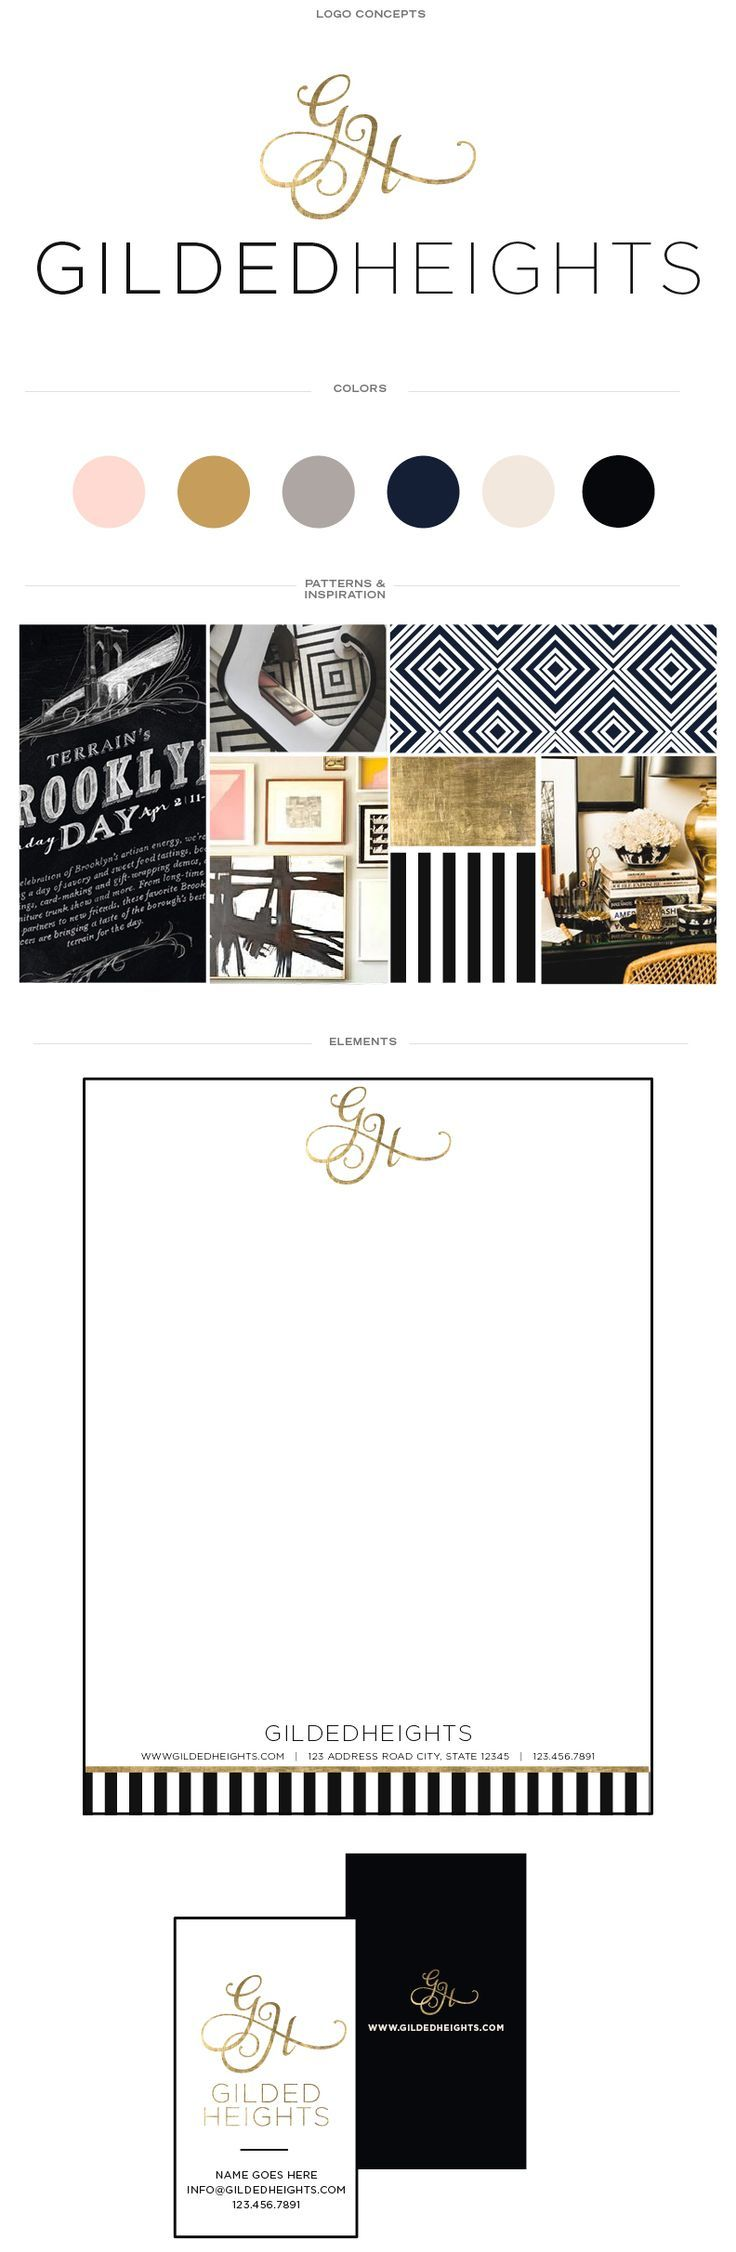 Interior Designer, Gilded Heights' New Brand and Website